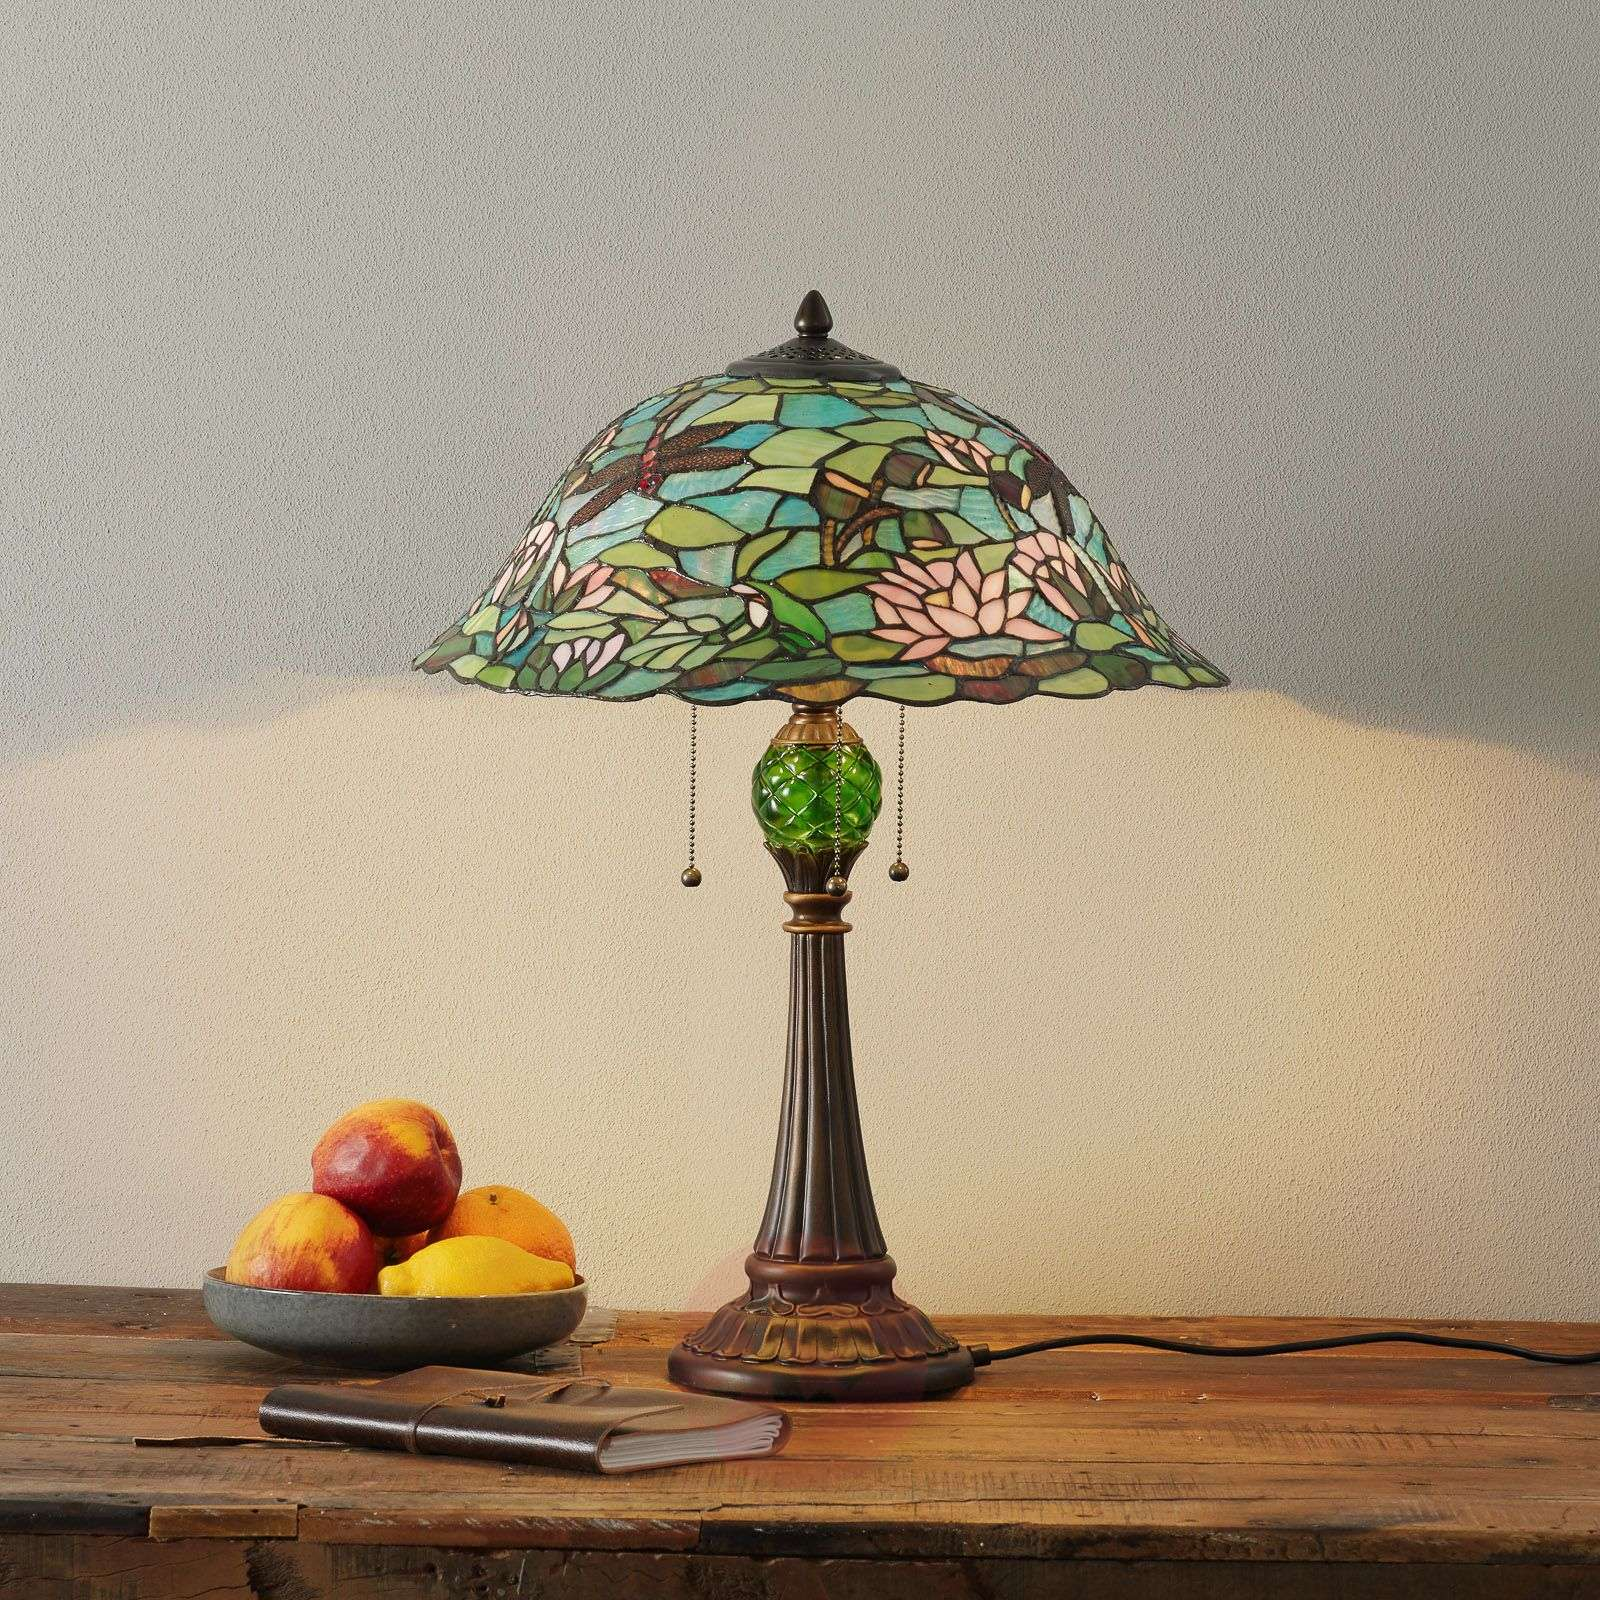 Lampe à poser Waterlily style Tiffany-6064020-01